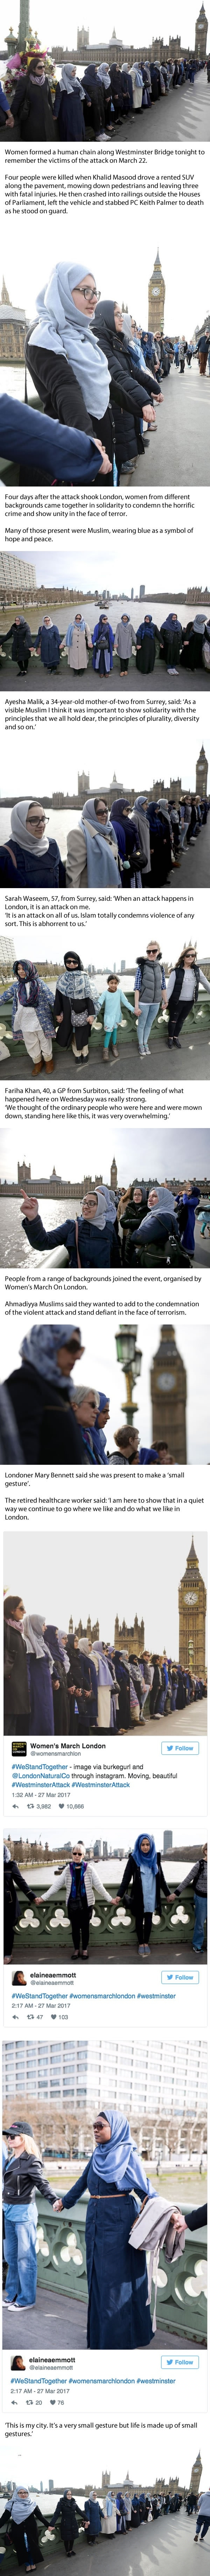 Muslim women gathered on Westminster Bridge